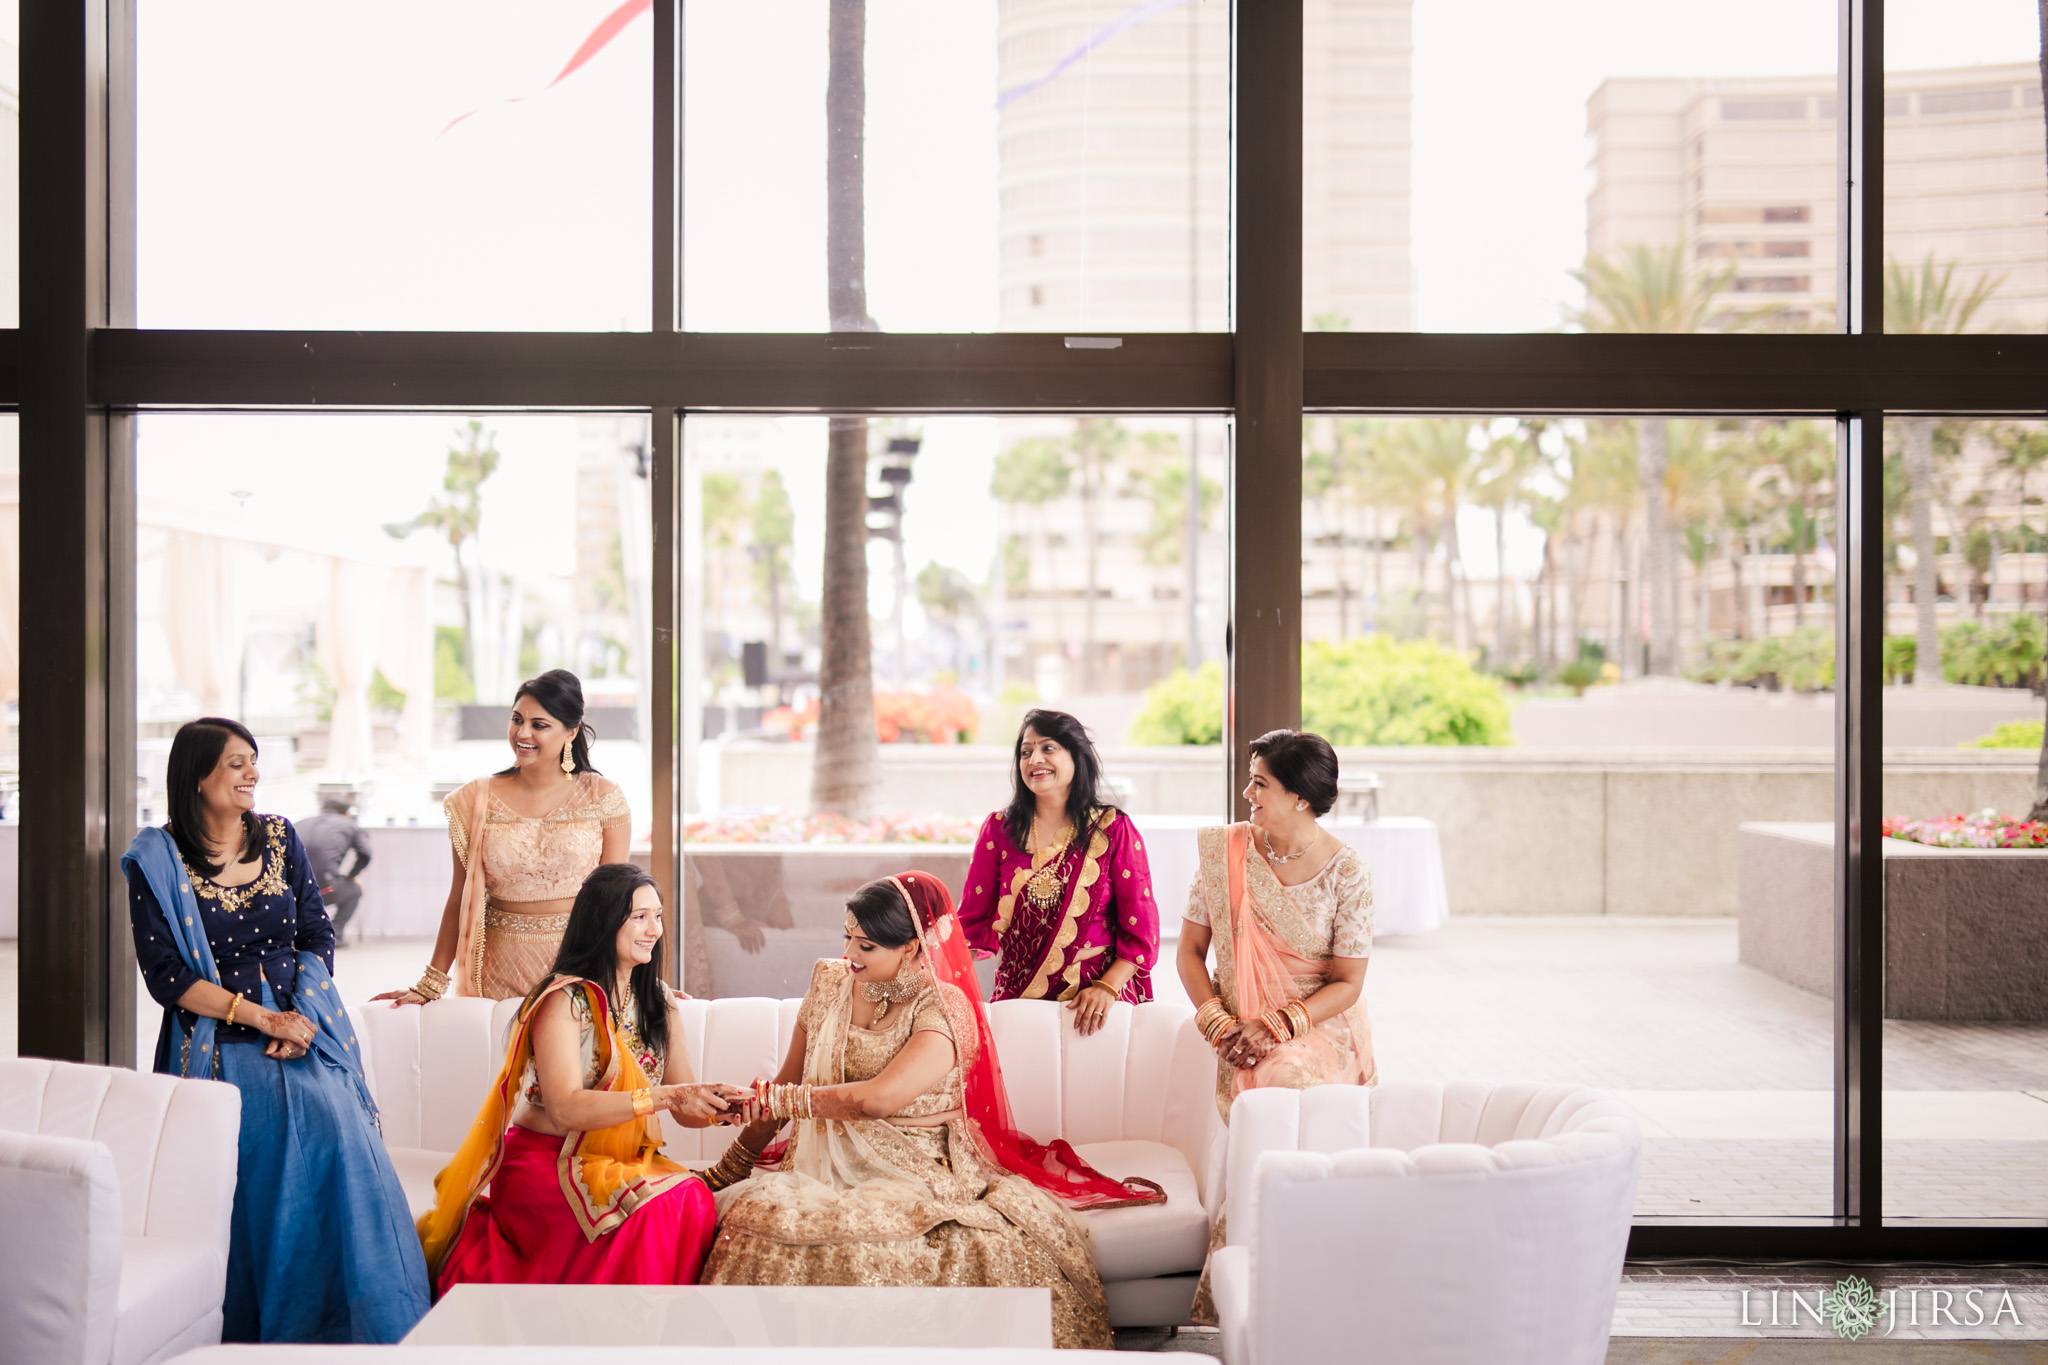 004 Long Beach Performing Arts Center Indian Bride Wedding Photography